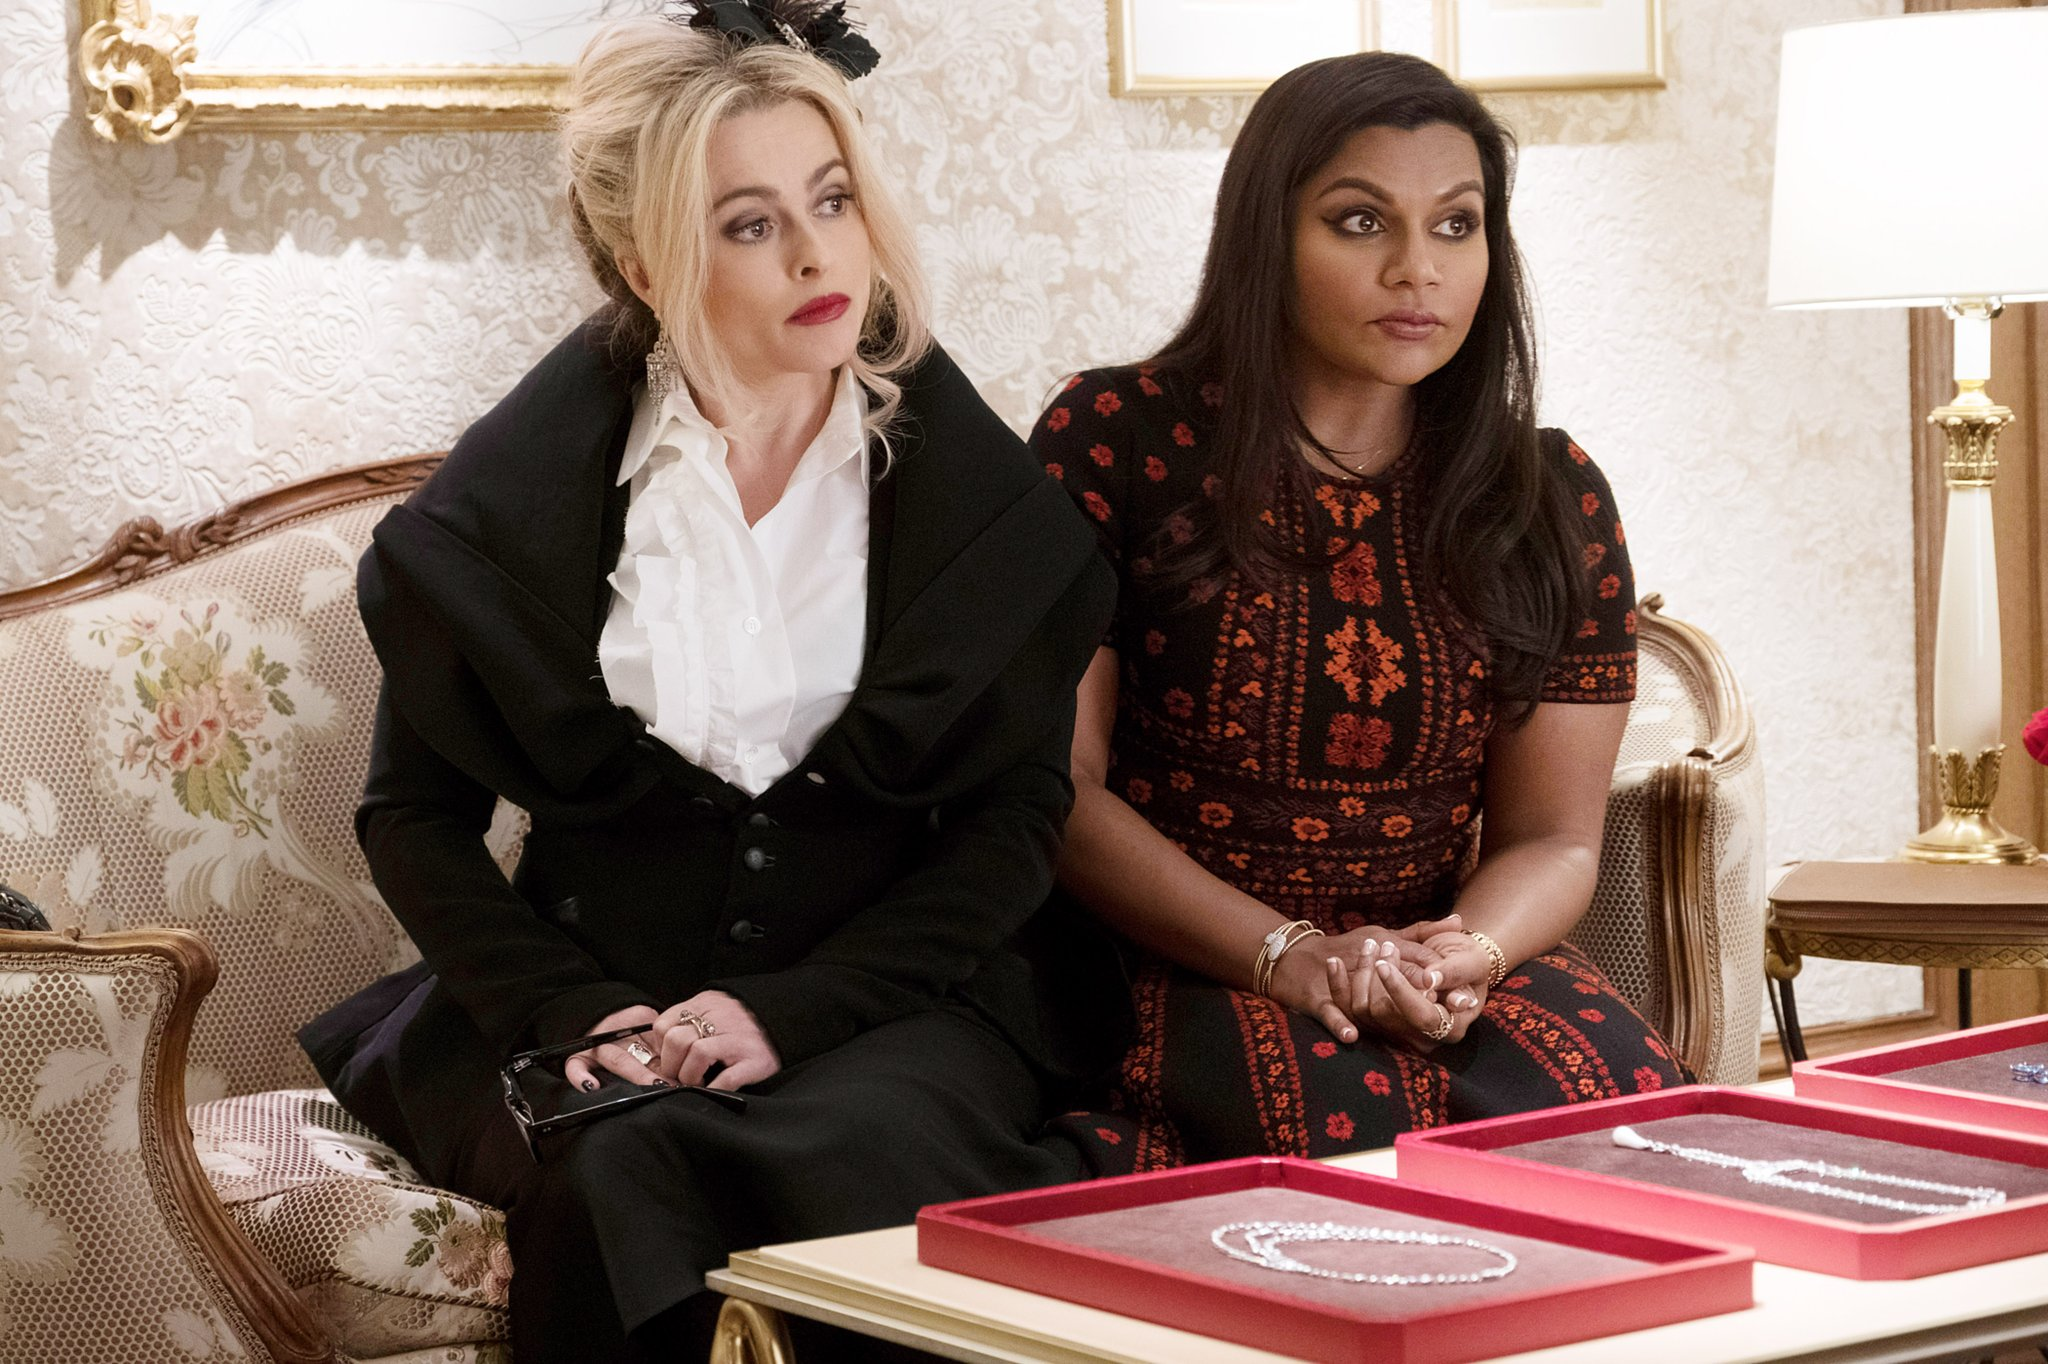 Helena Bonham Carter and Mindy Kaling in Ocean's Eight Movie